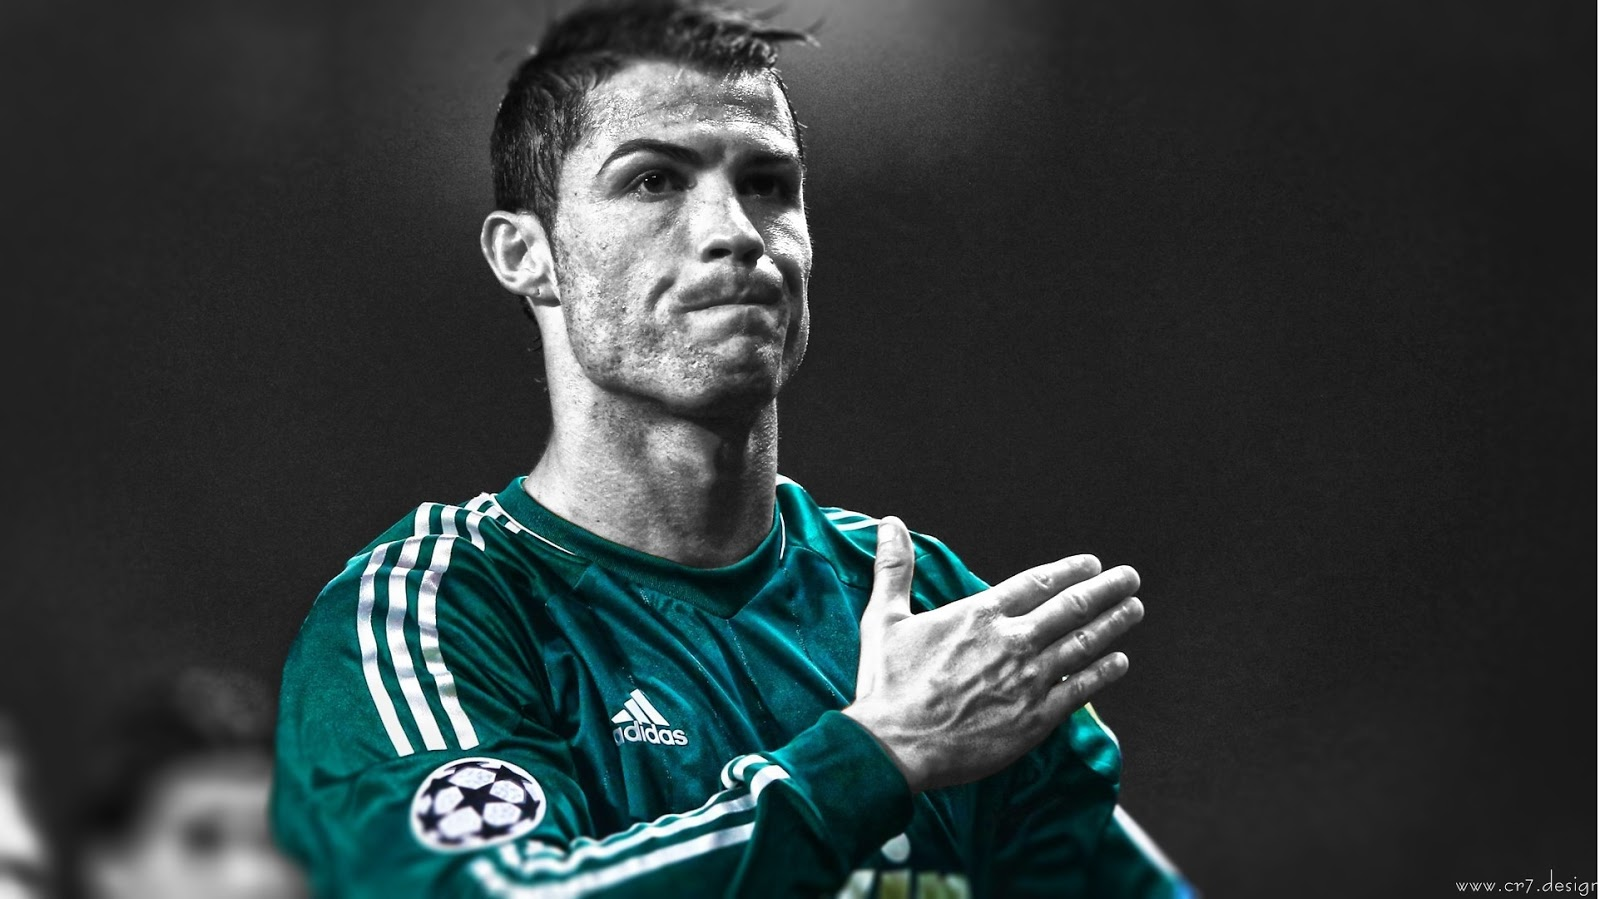 ciristiano-ronaldo-wallpaper-design-72